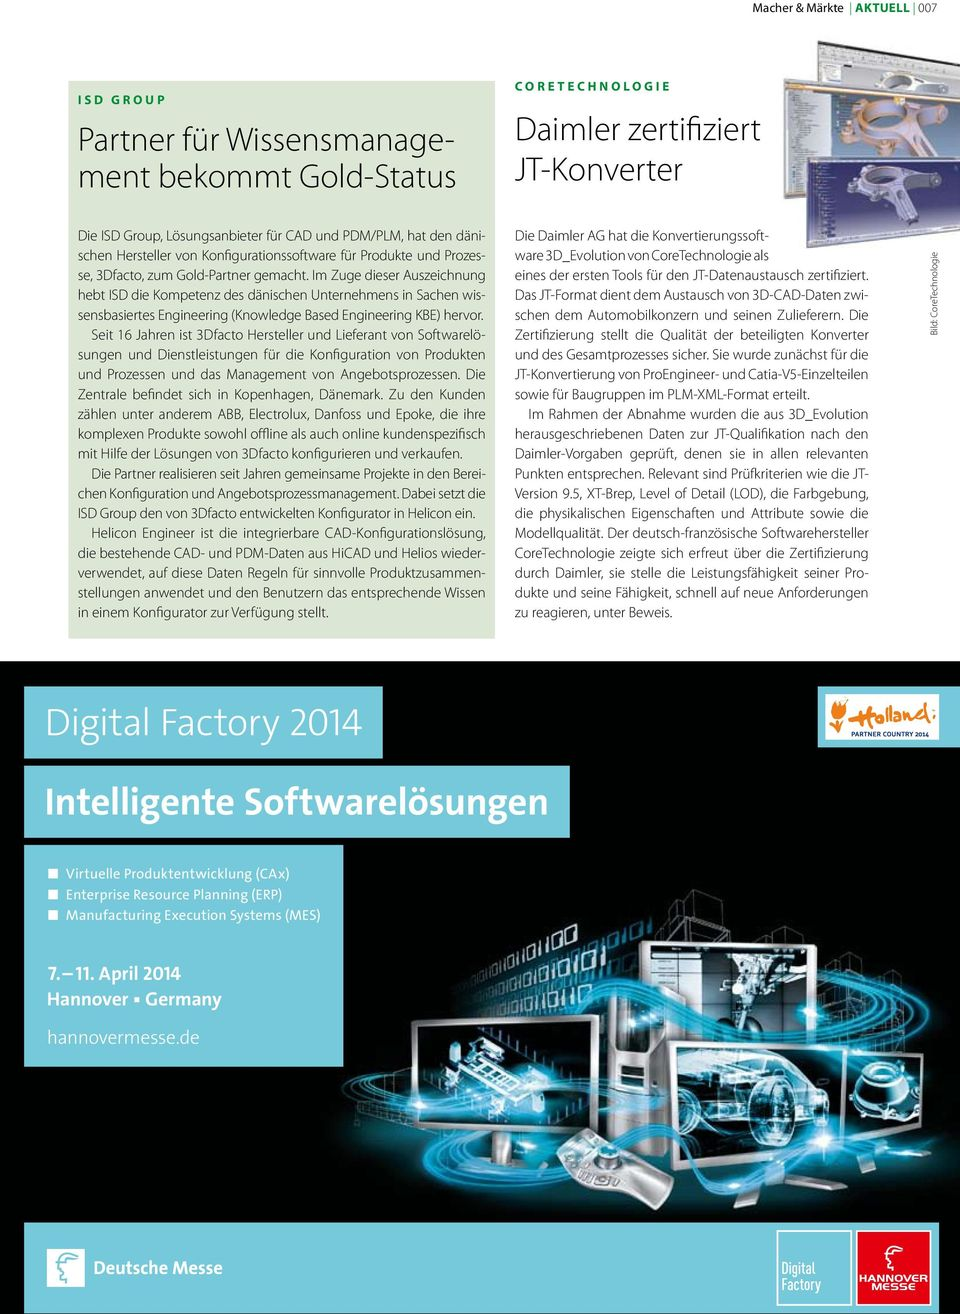 Im Zuge dieser Auszeichnung hebt ISD die Kompetenz des dänischen Unternehmens in Sachen wissensbasiertes Engineering (Knowledge Based Engineering KBE) hervor.